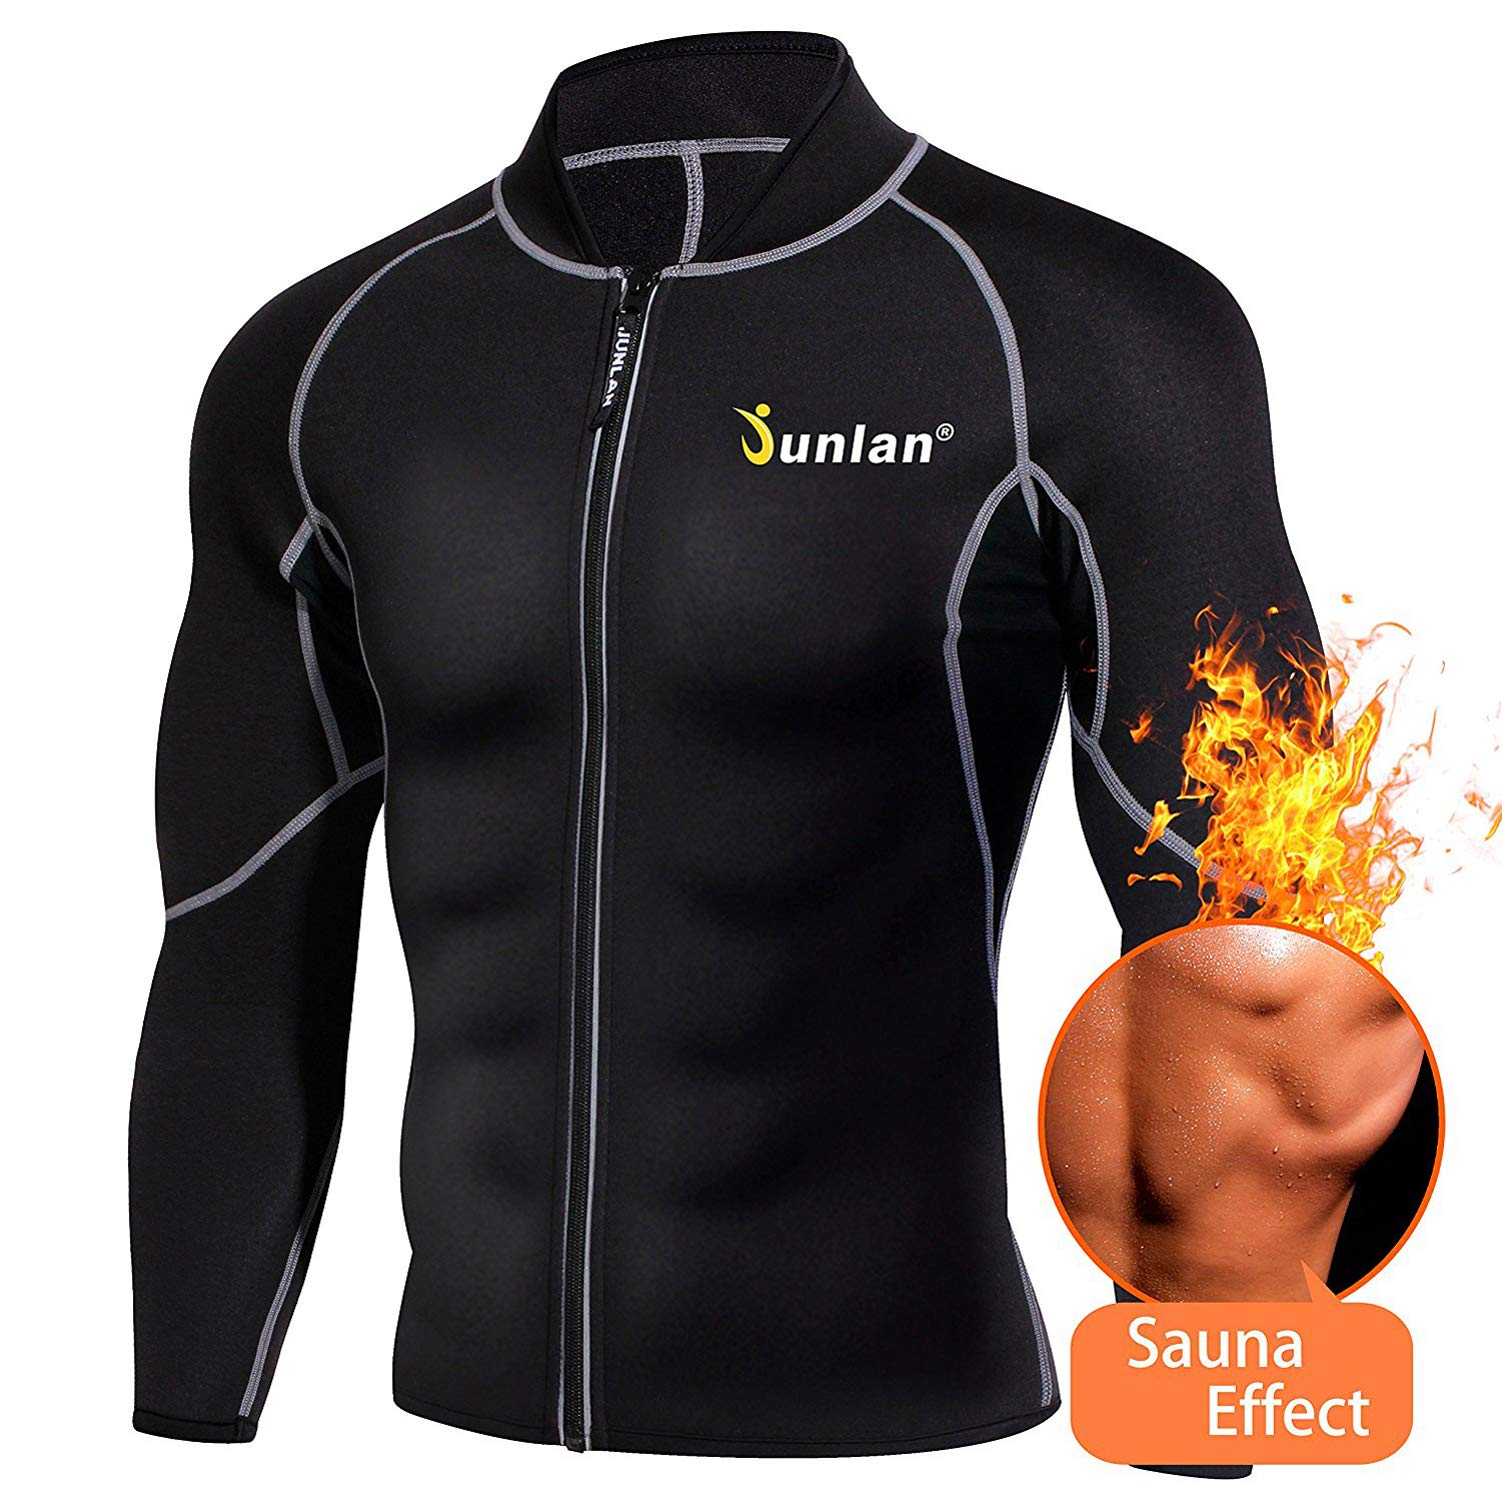 RDX MMA Sauna Suit Non Rip Sweat Suit Track Weight Loss Slimming Fitness Gym Exercise Training